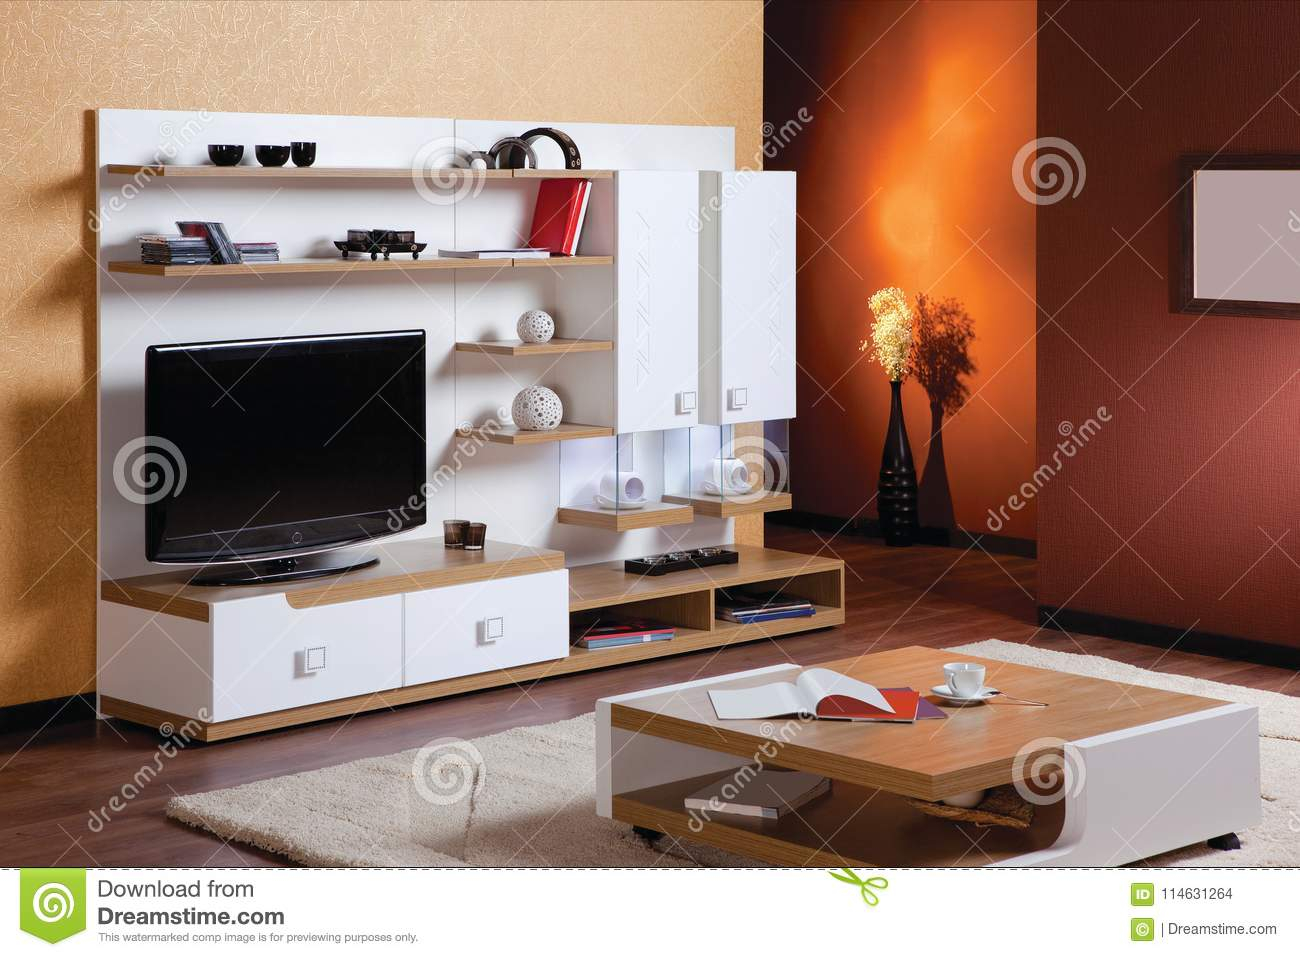 Living Room With Tv Stand Stock Photo Image Of Unit 114631264